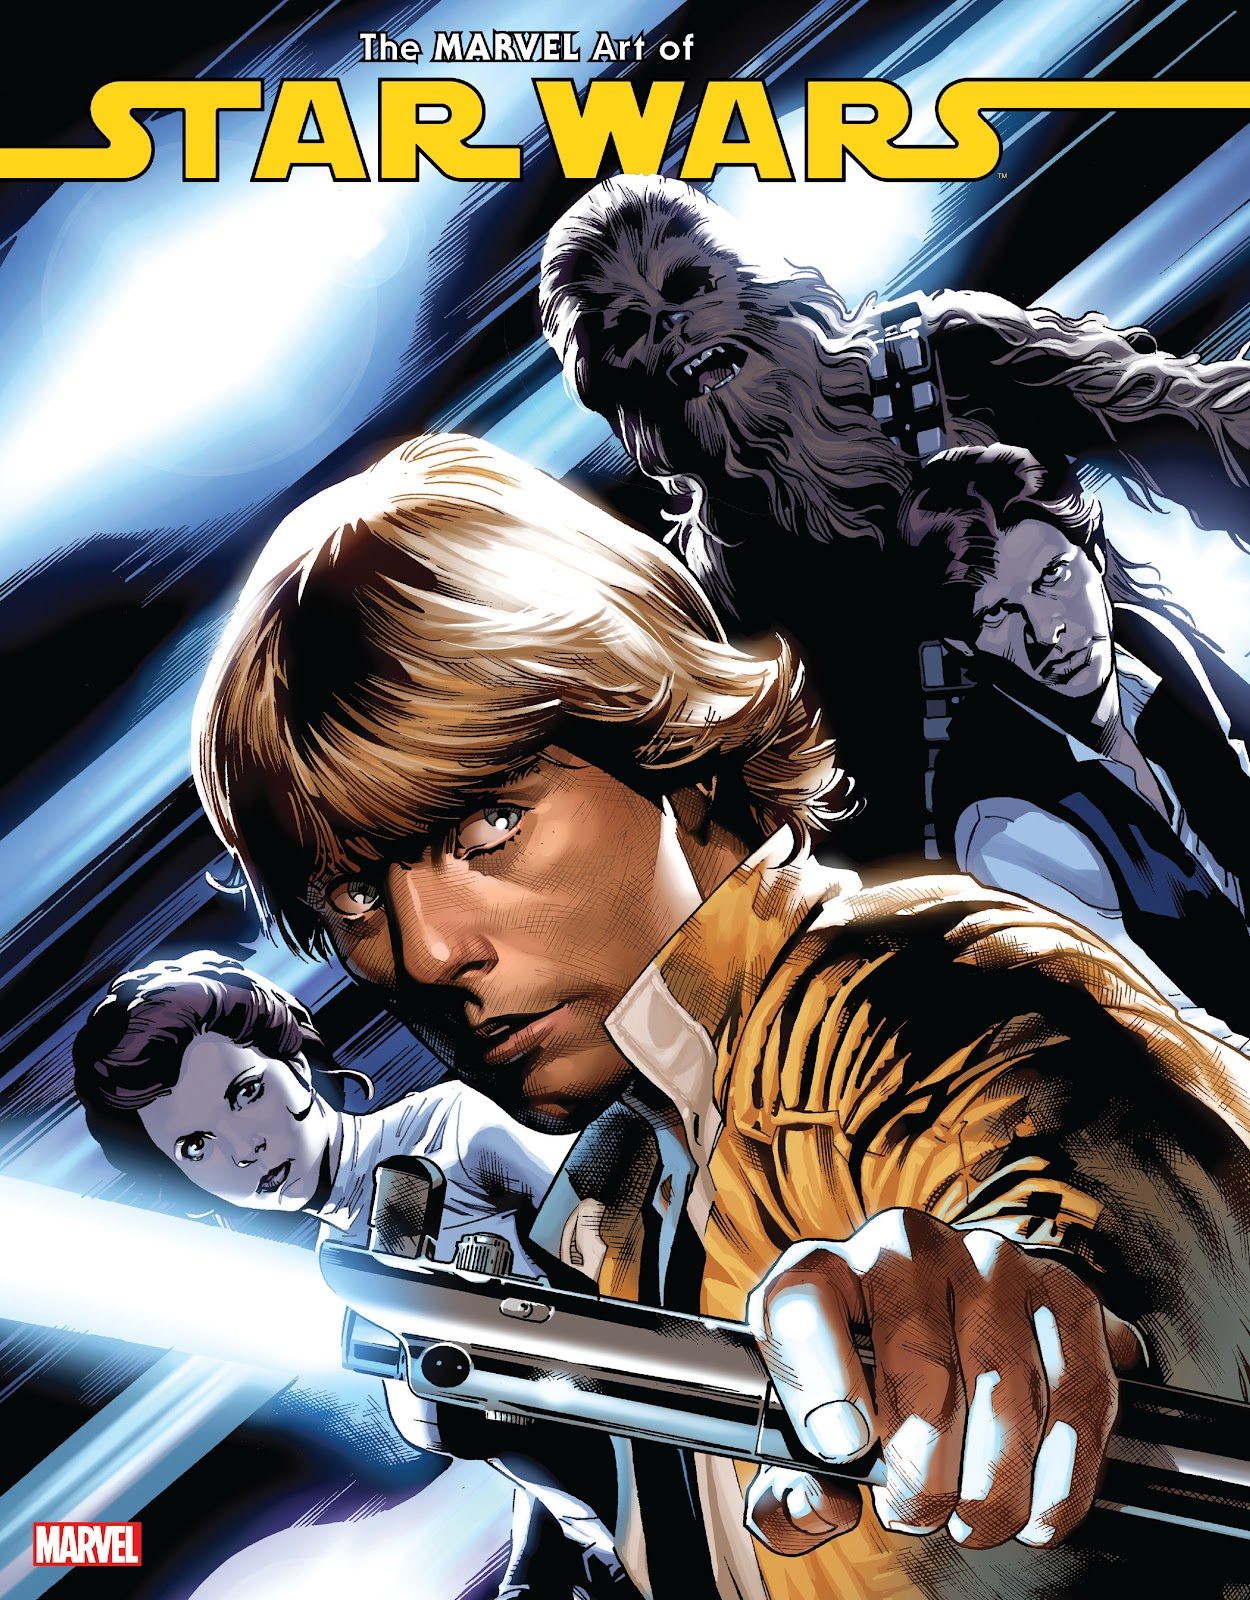 Read online The Marvel Art of Star Wars comic -  Issue # TPB (Part 1) - 1